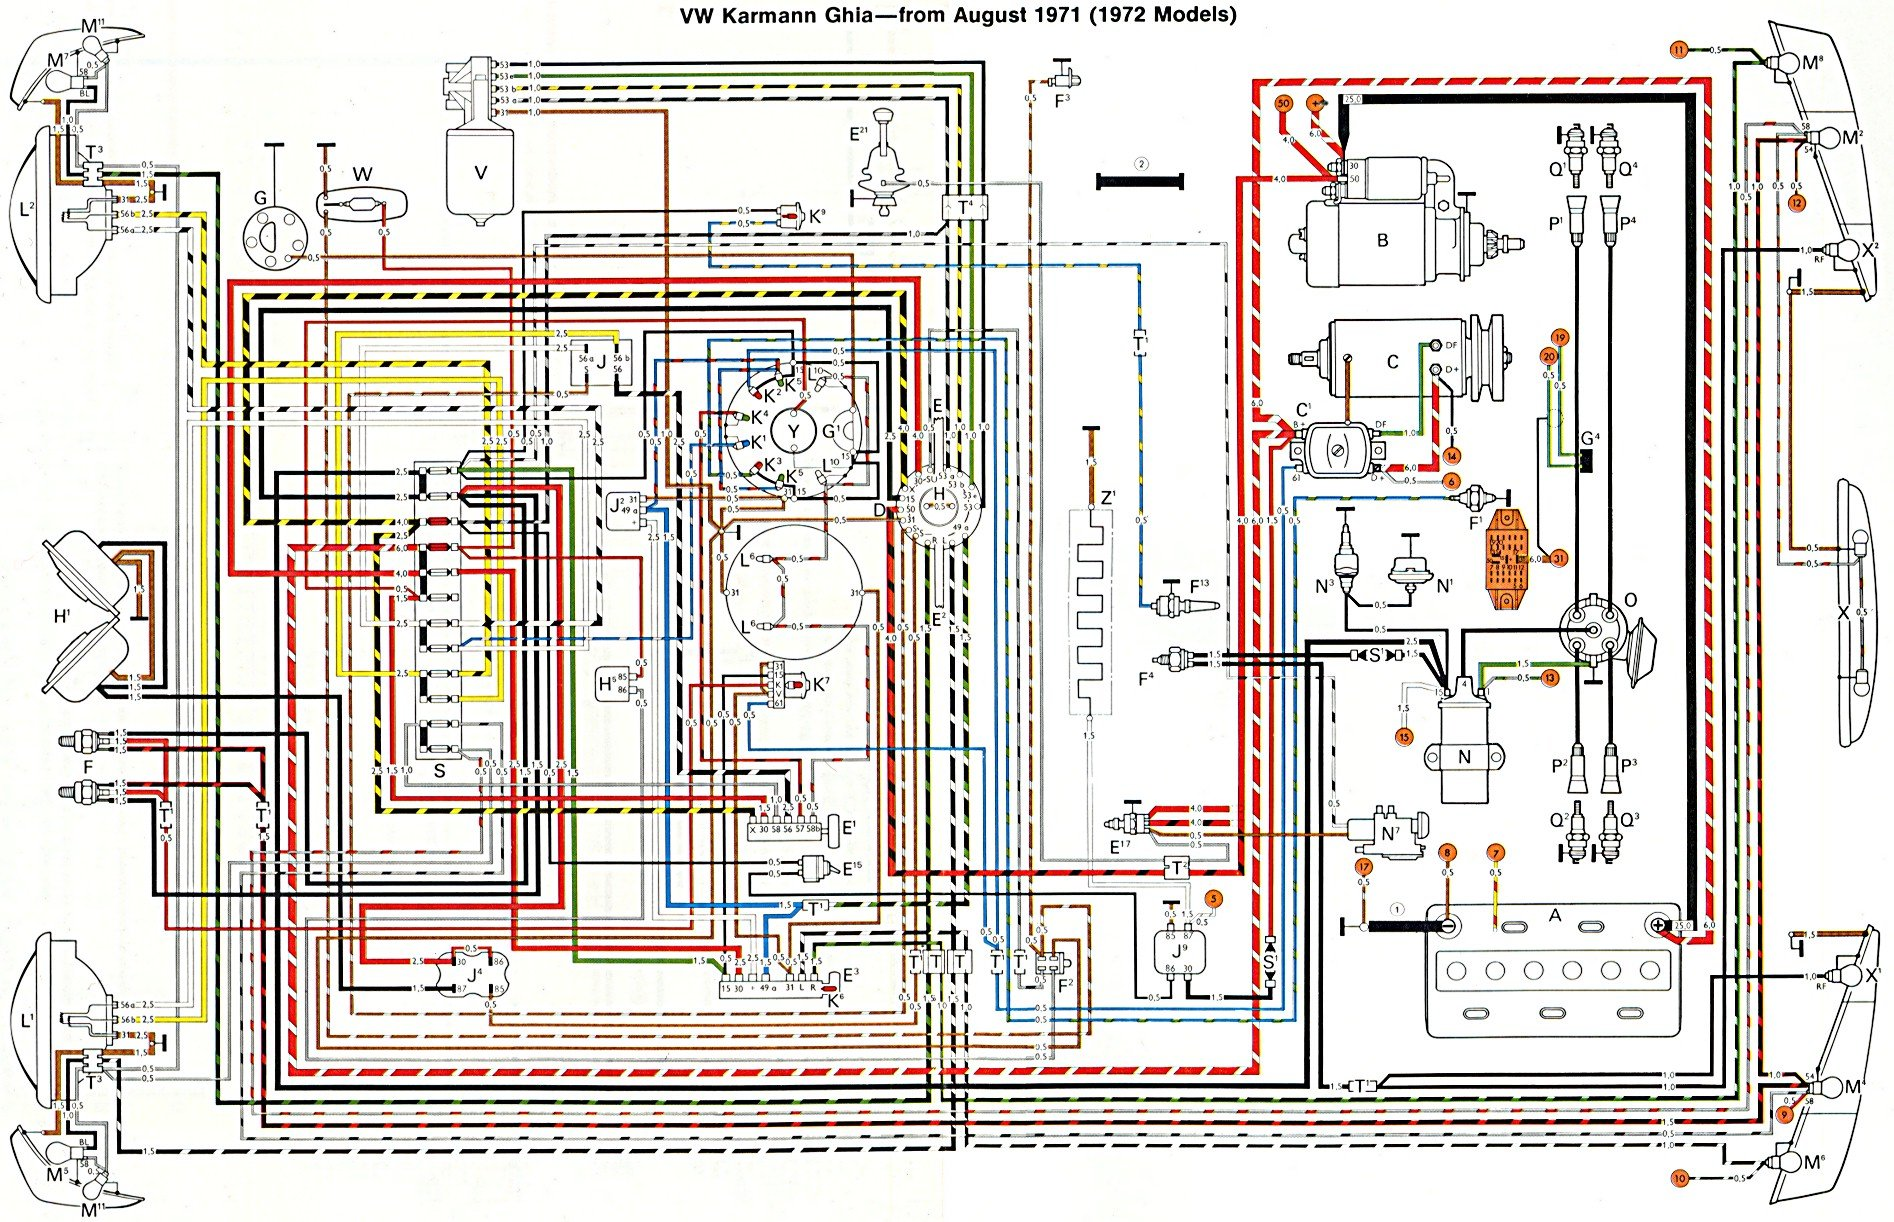 72ghia vw type 3 wiring diagram vw wiring diagrams free downloads \u2022 free vw type 3 wiring harness at couponss.co